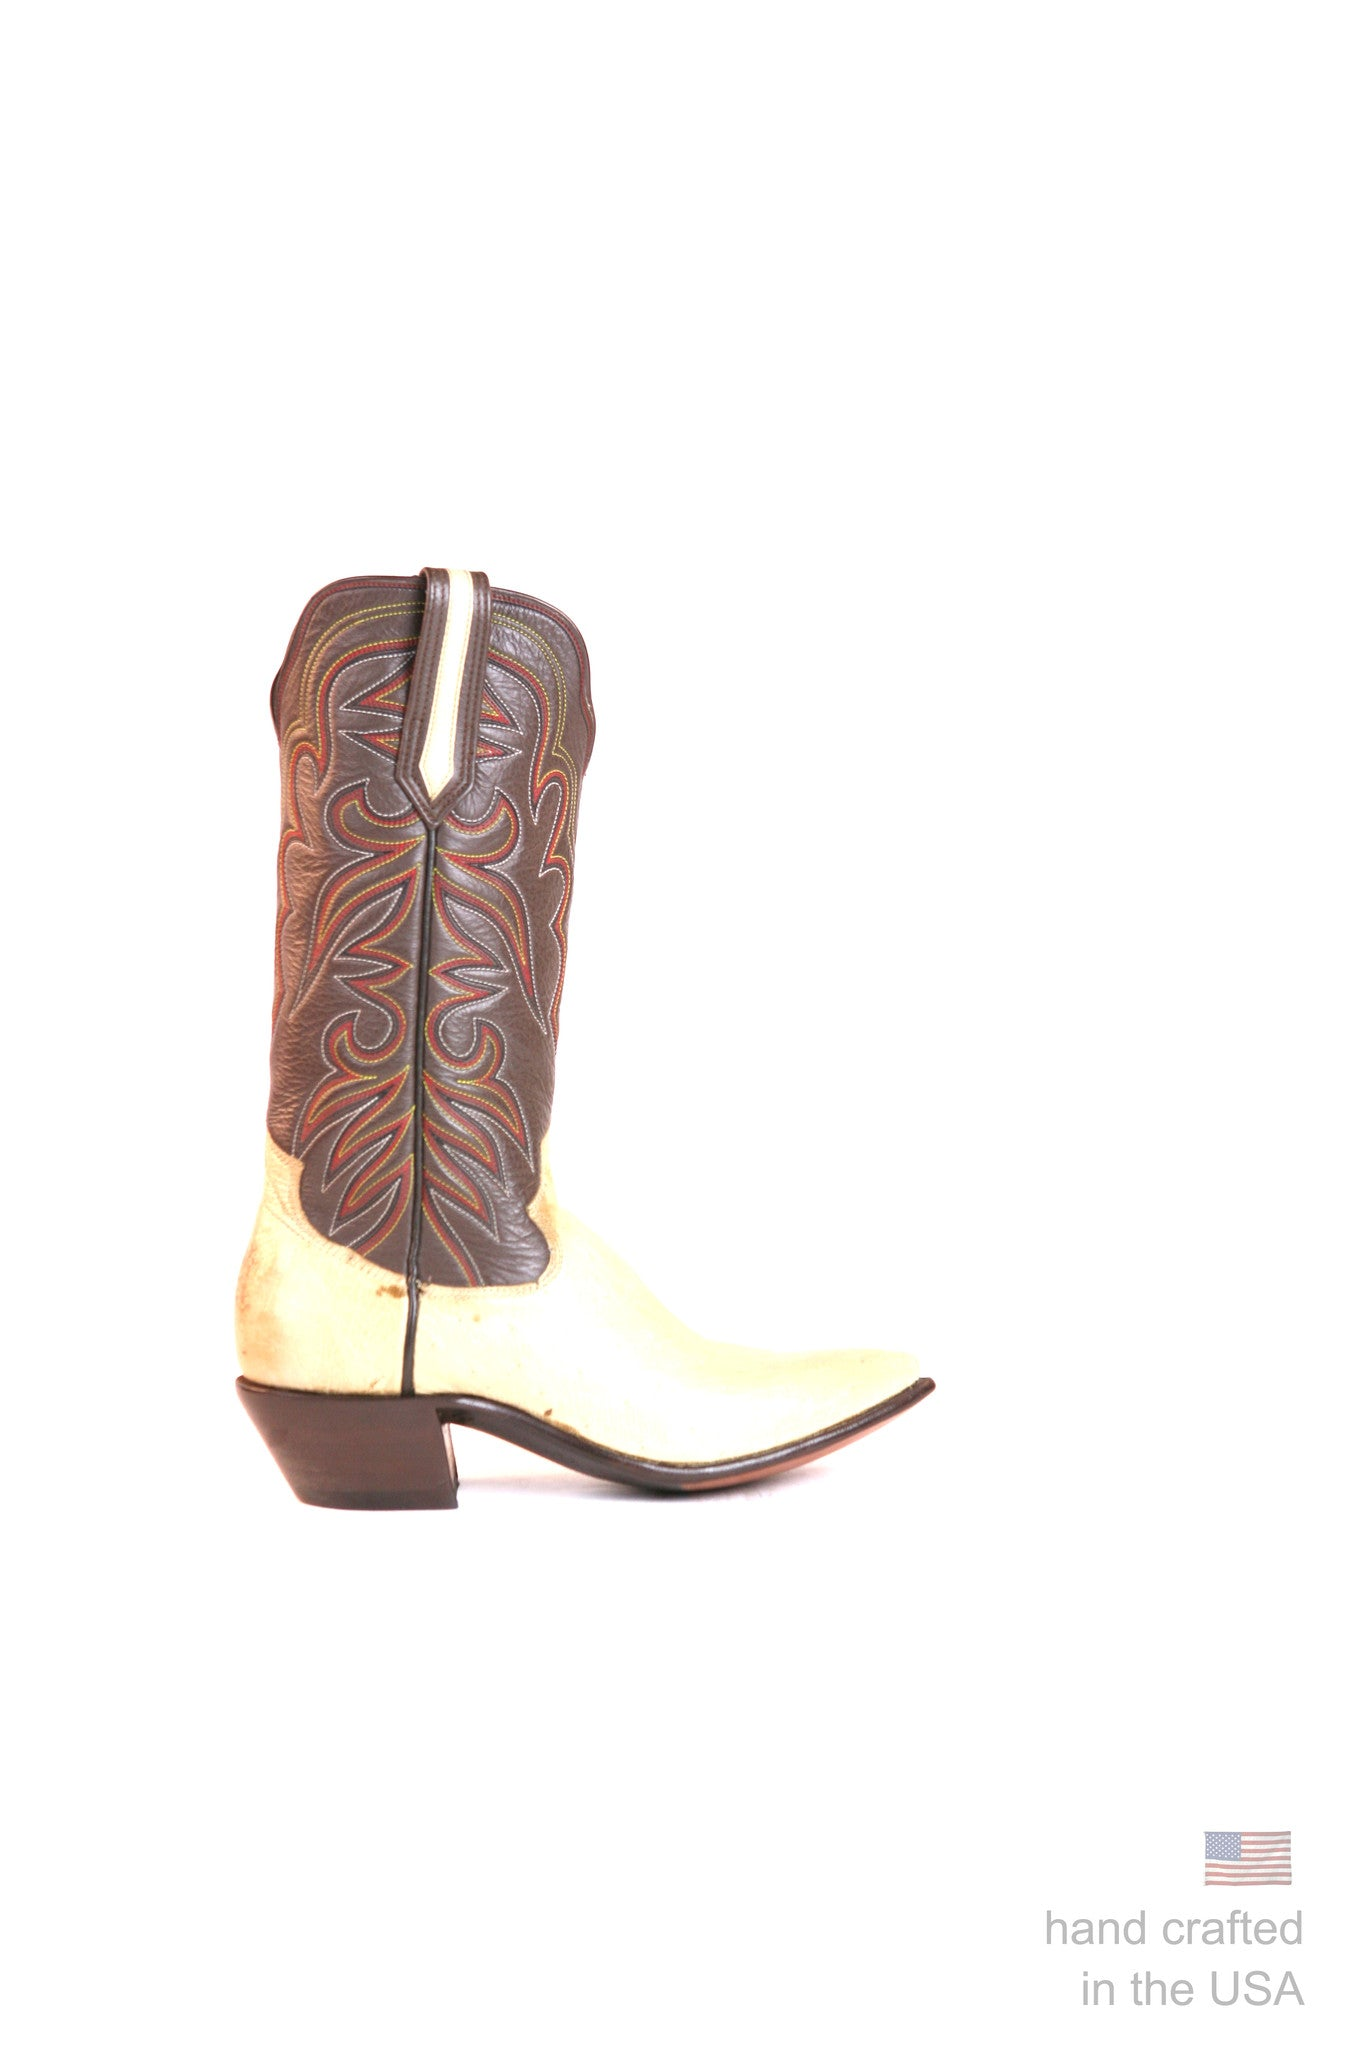 Singles: Boot 0020: Size 5A